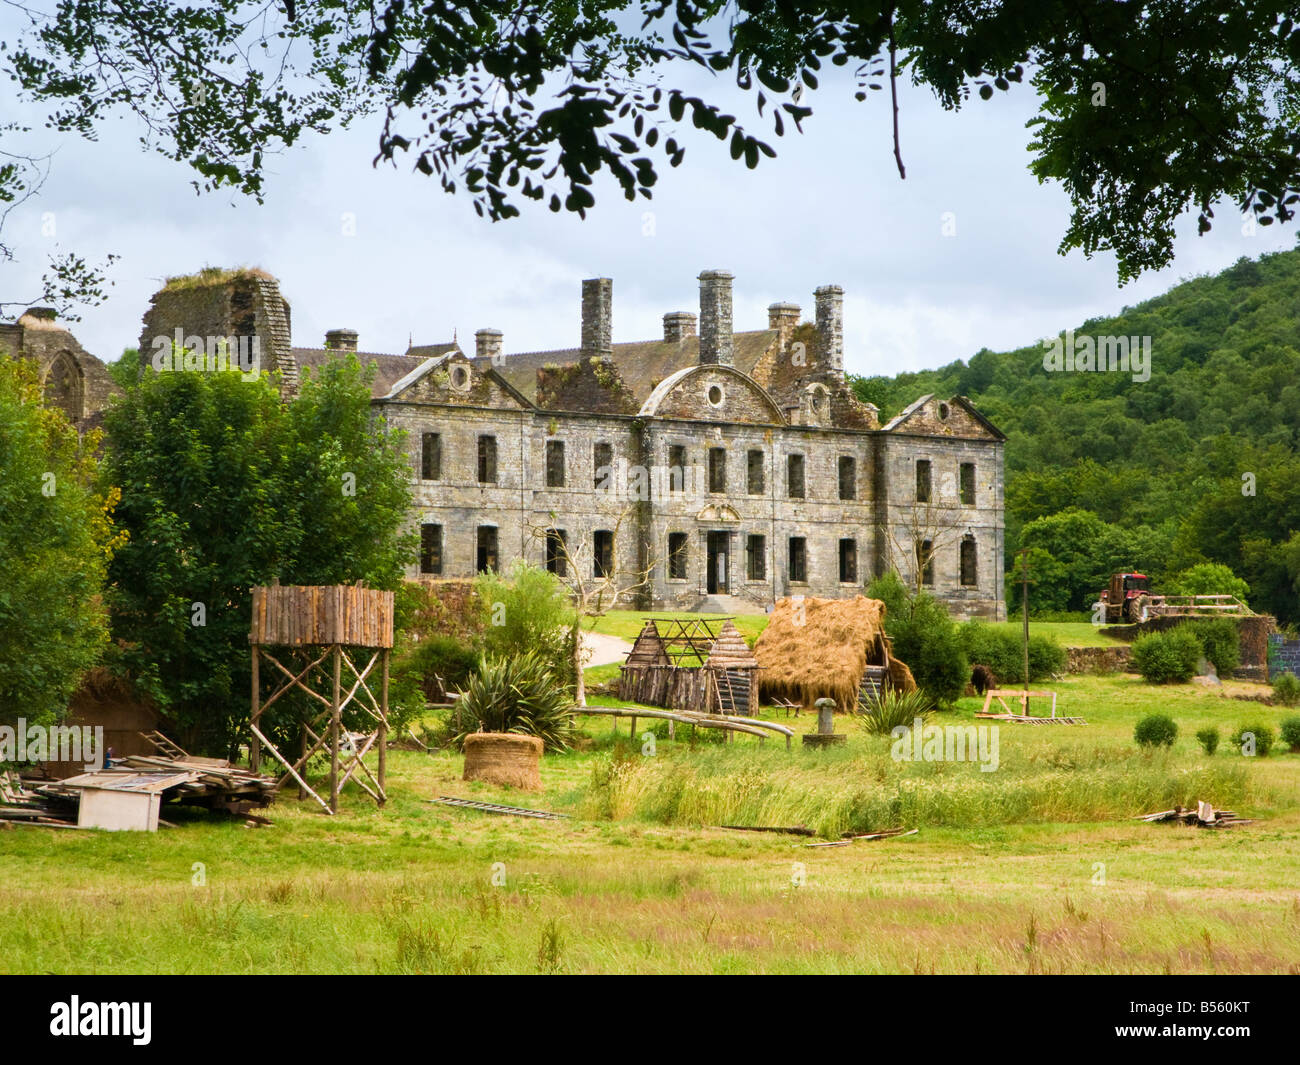 Abbey de Bon Repos, Cotes d'Armor, Brittany, France, Europe - Stock Image